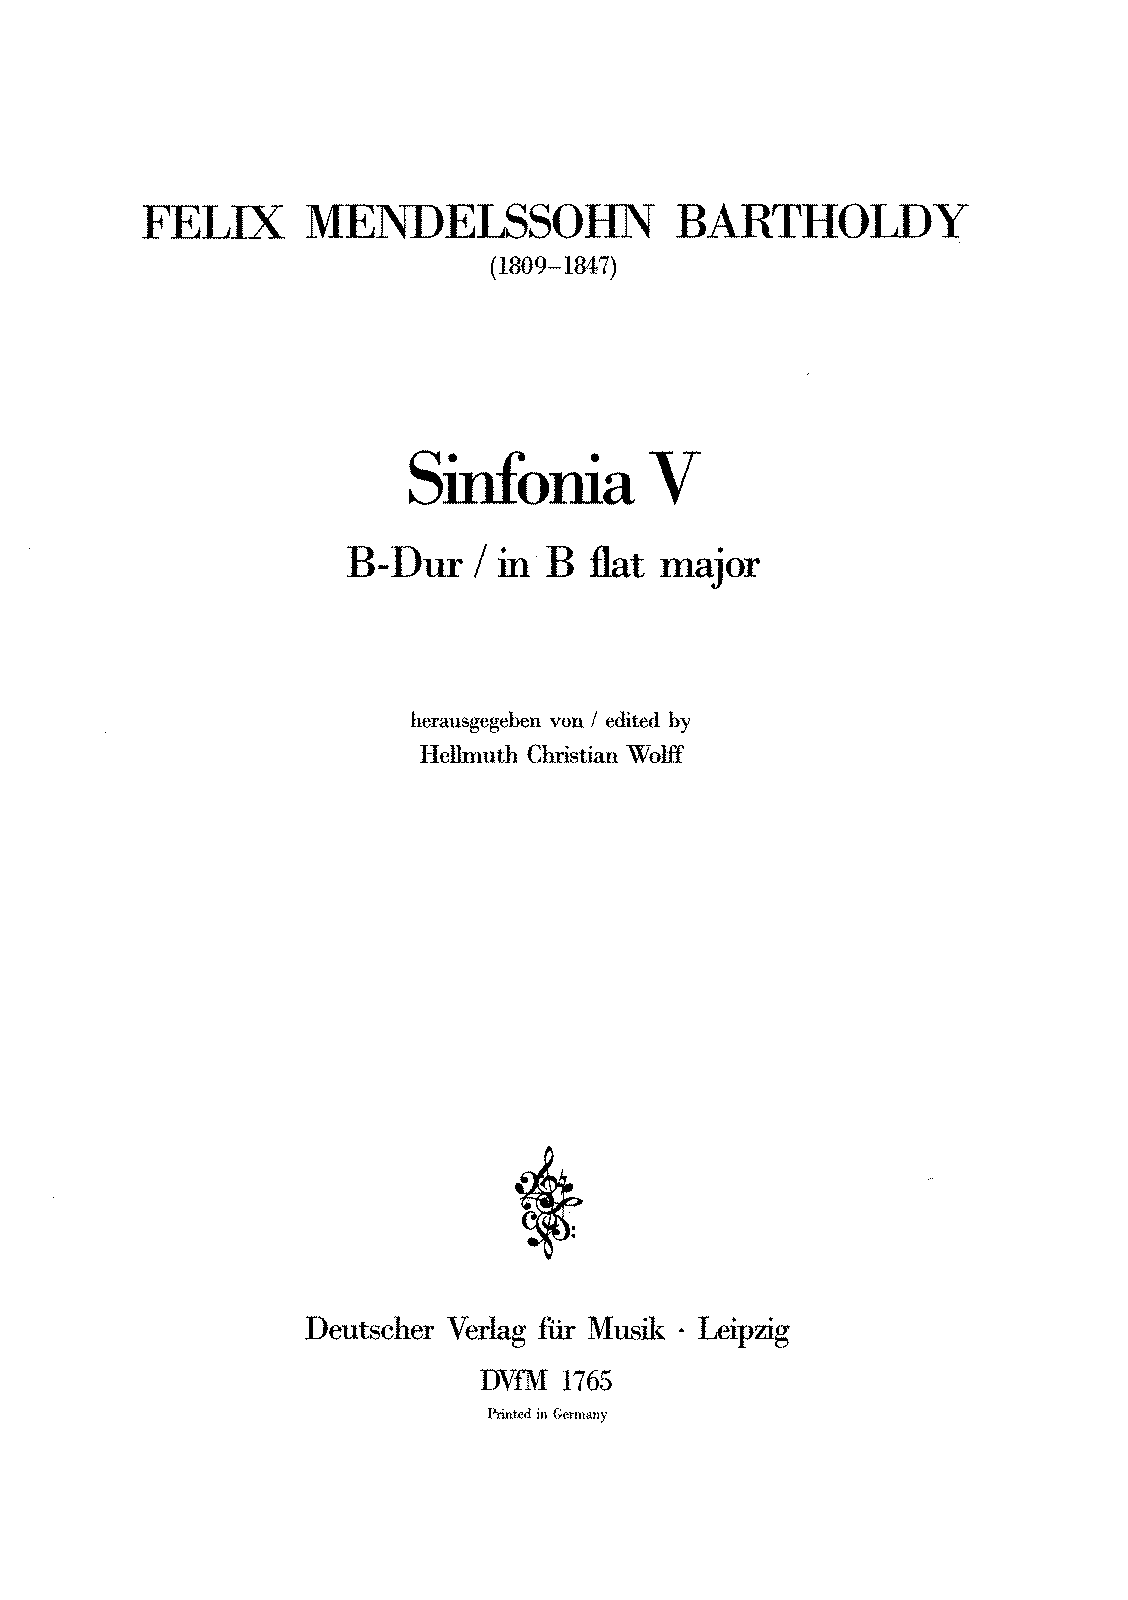 PMLP207408-Mendelssohn, Felix - Sinfonia for String no. 05 in B flat major MWV N 5.pdf